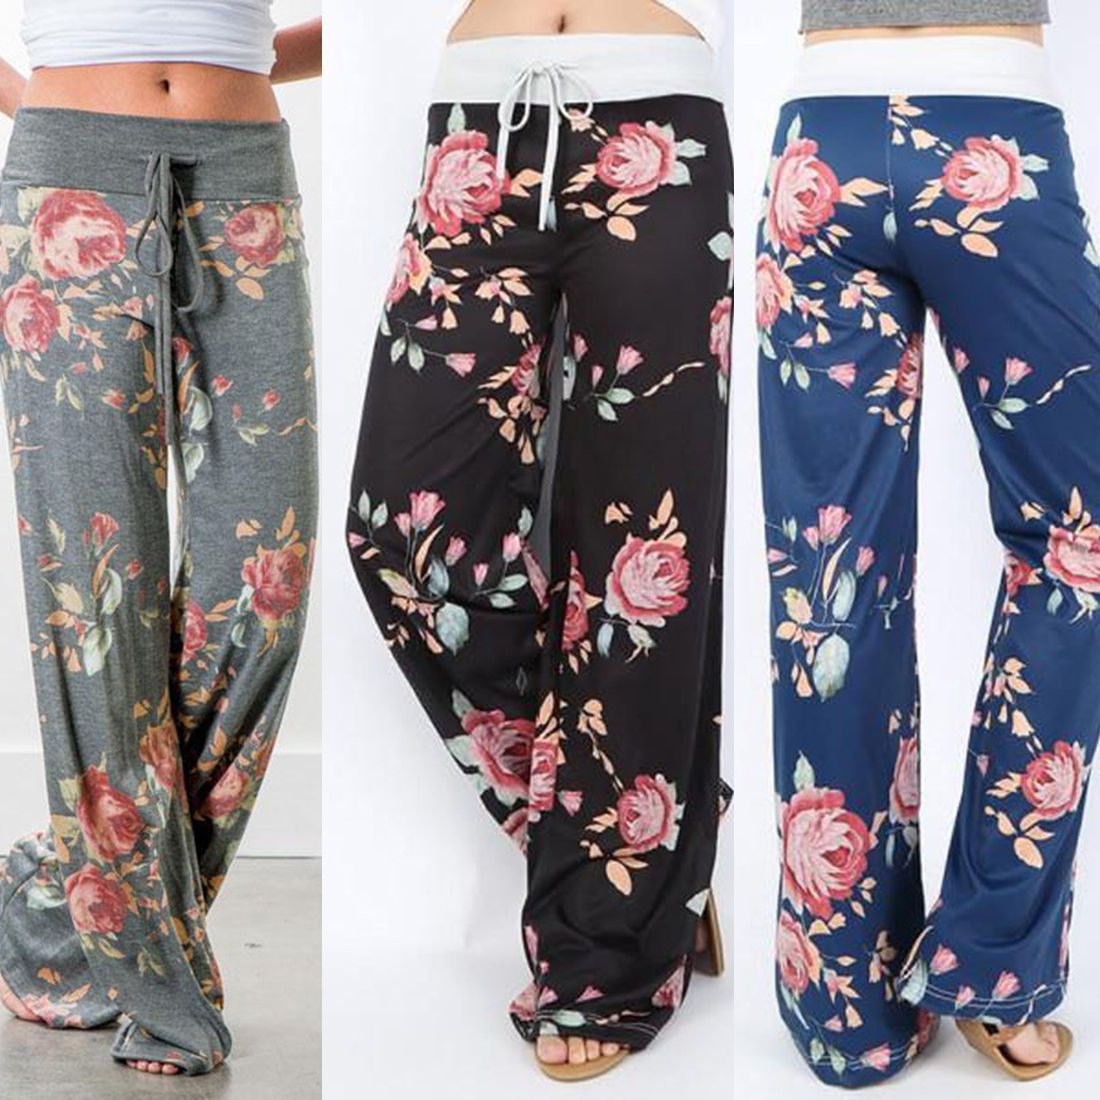 36e88bea528406 Women Summer Printed Floral Cotton Linen Wide Leg Pants Loose Trousers  Slacks